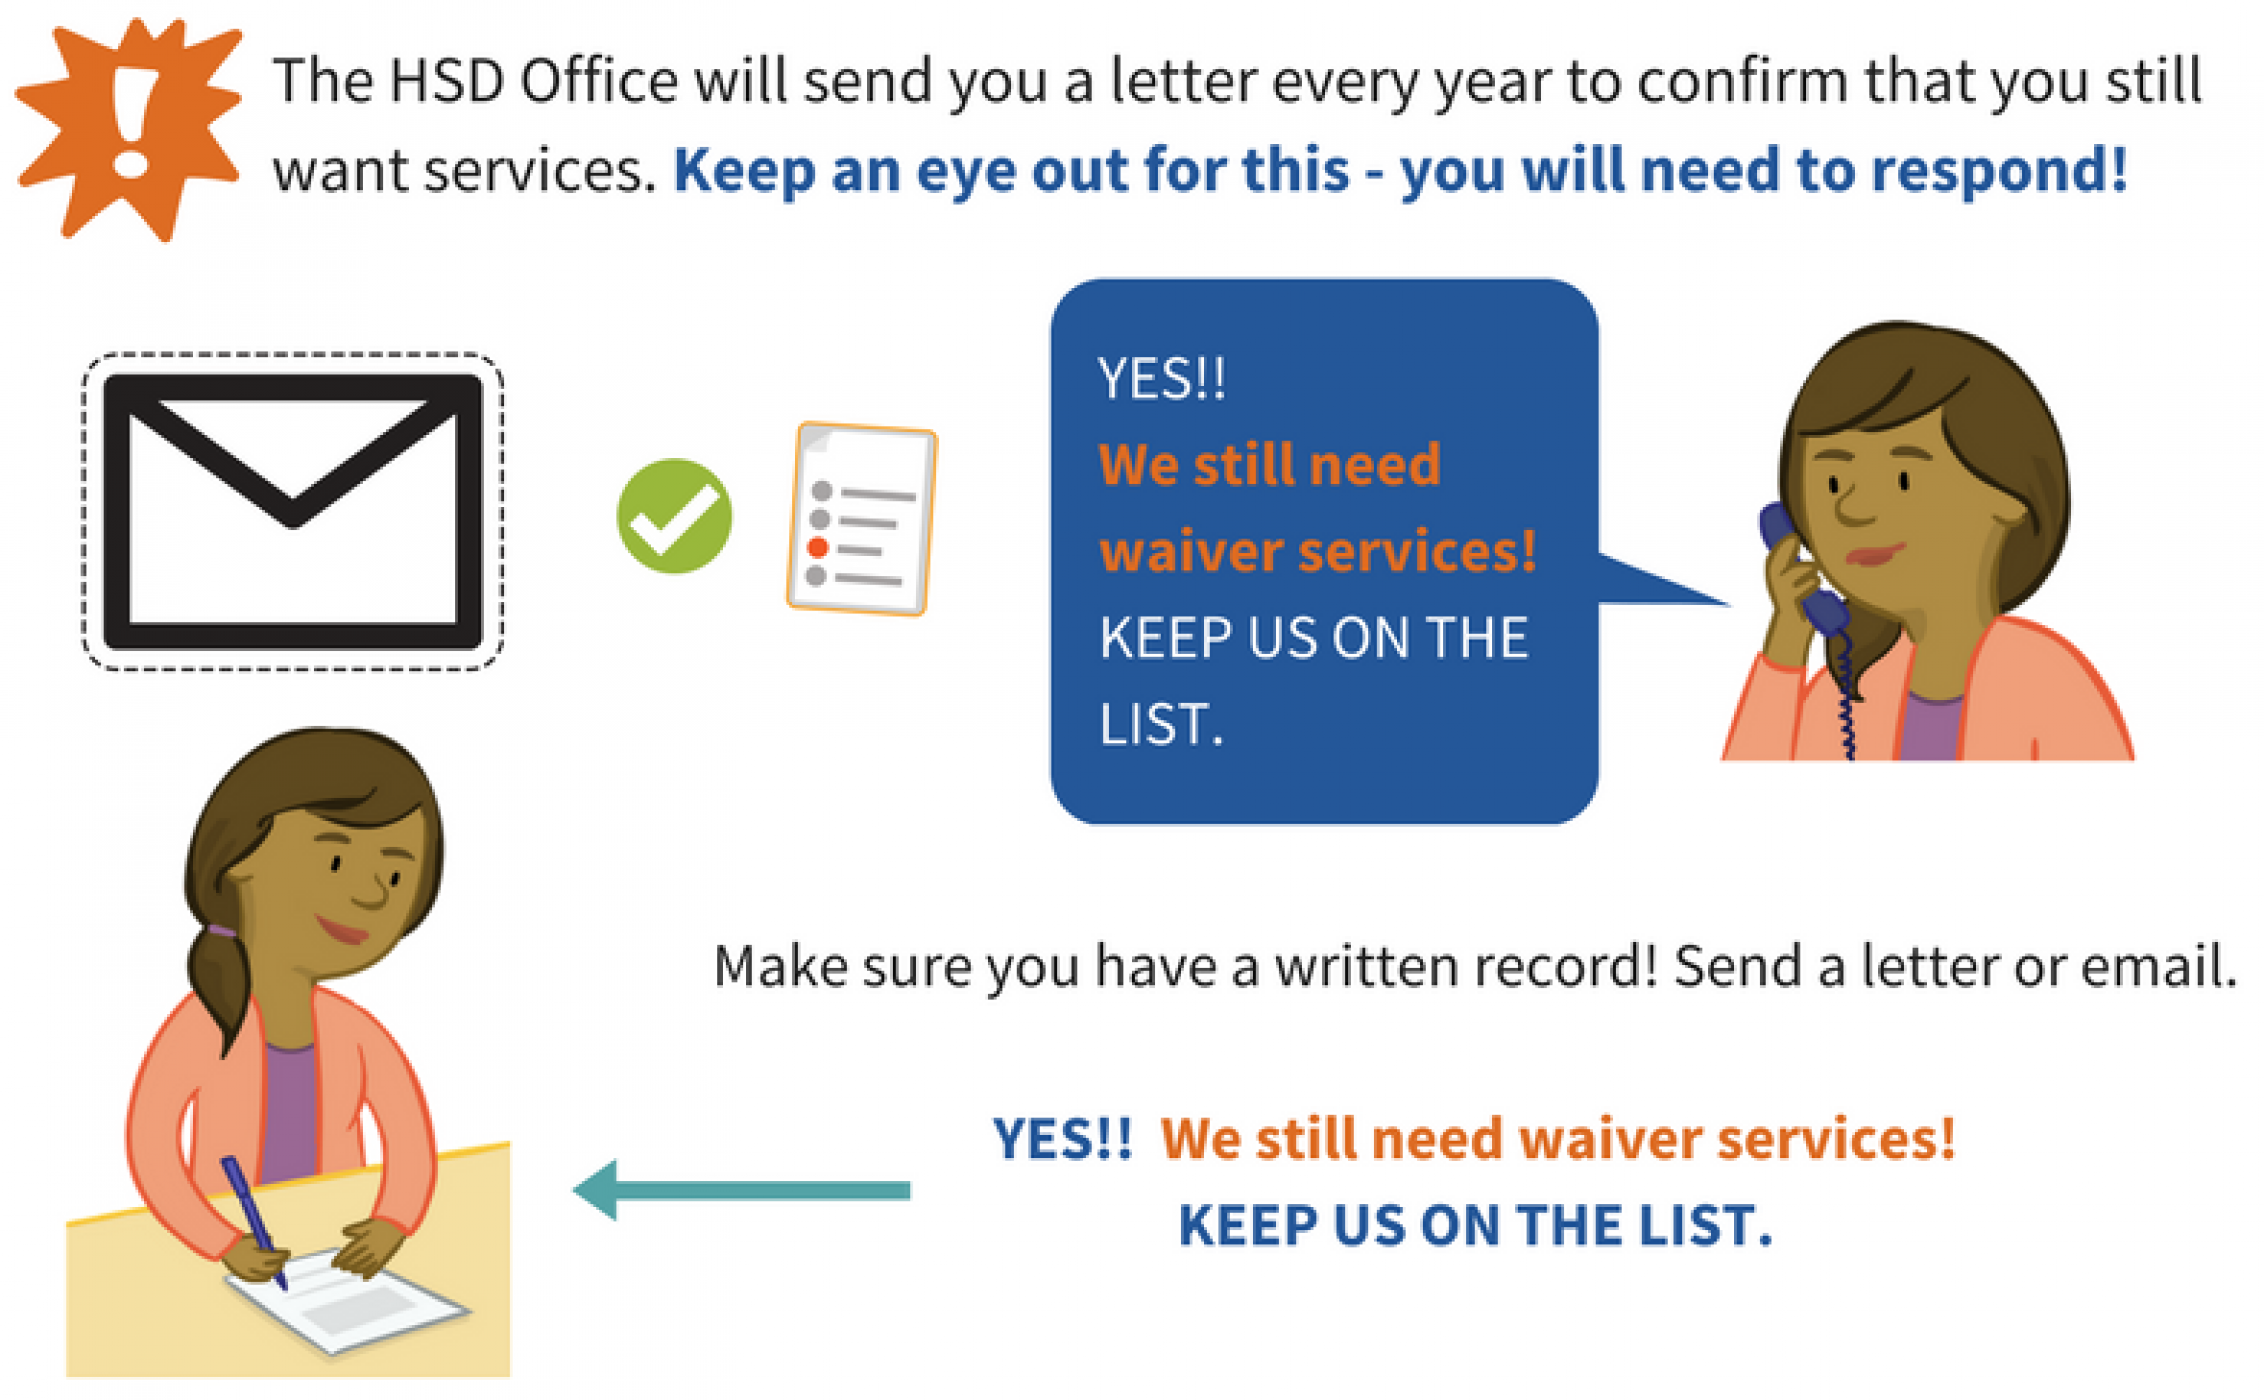 Infographic shows a parent calling the HSD office and saying 'Yes! We still need waiver services! Keep us on the list.' Make sure you have a written record that you still want services. Send a letter or email saying, 'Yes! We still need waiver services. Keep us on the list!'